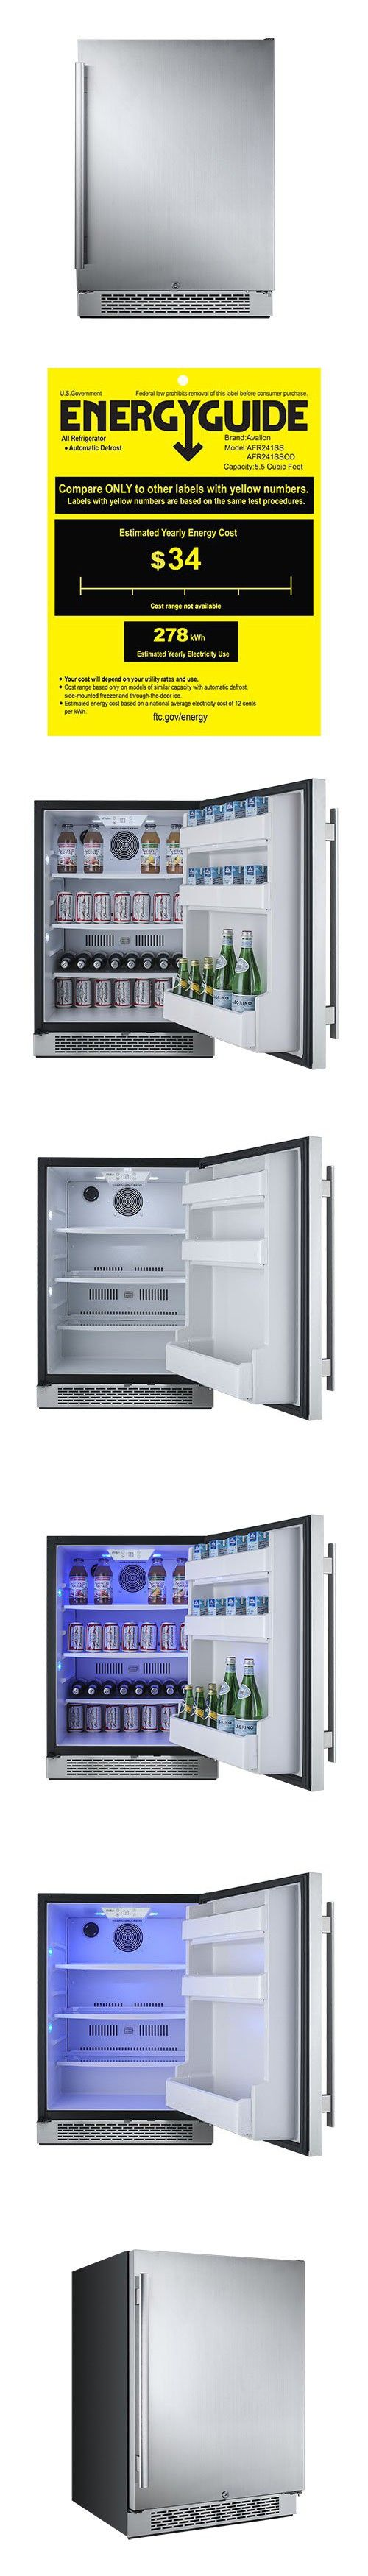 "Avallon 5.5 Cu Ft Built-In 24"" Refrigerator - Right Hinge"